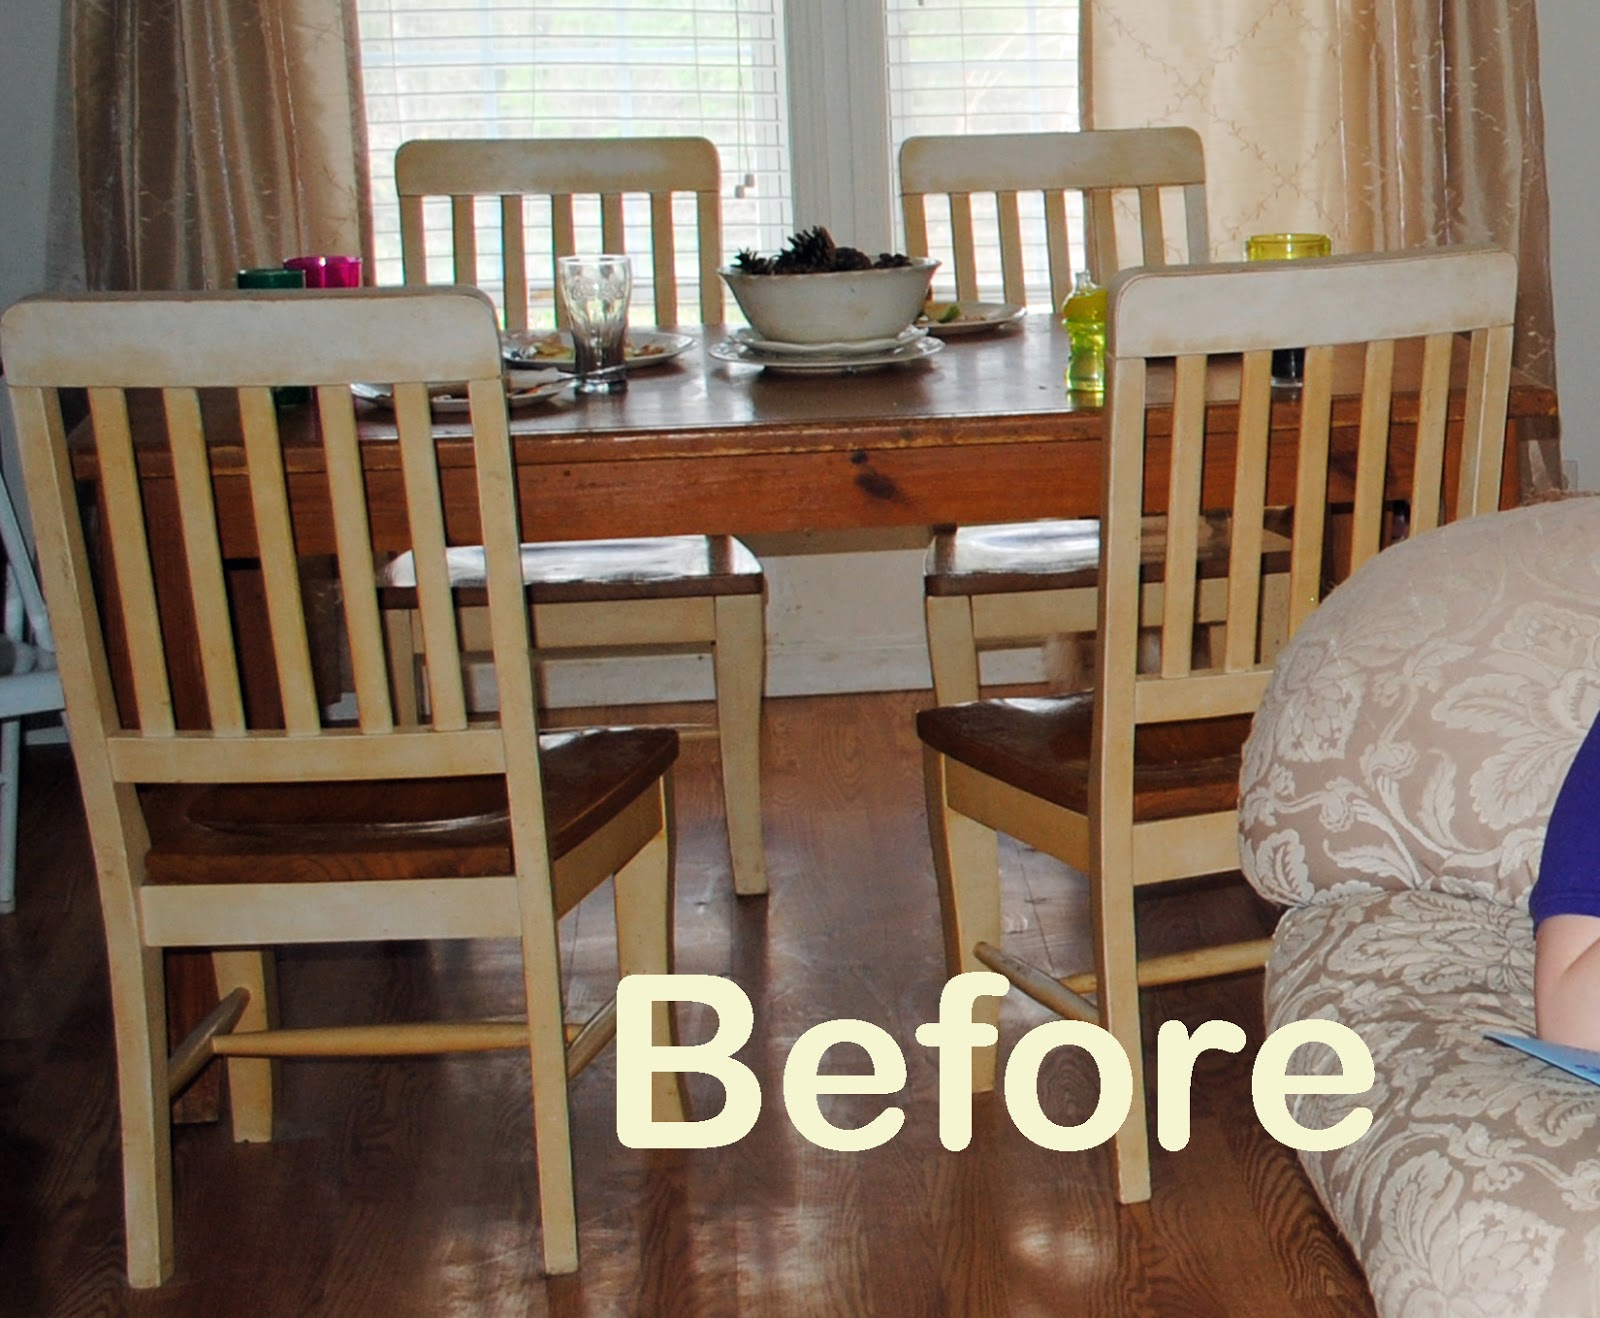 refinish old knotty pine dining table redo kitchen table Refinish an Old Knotty Pine Dining Table The Story